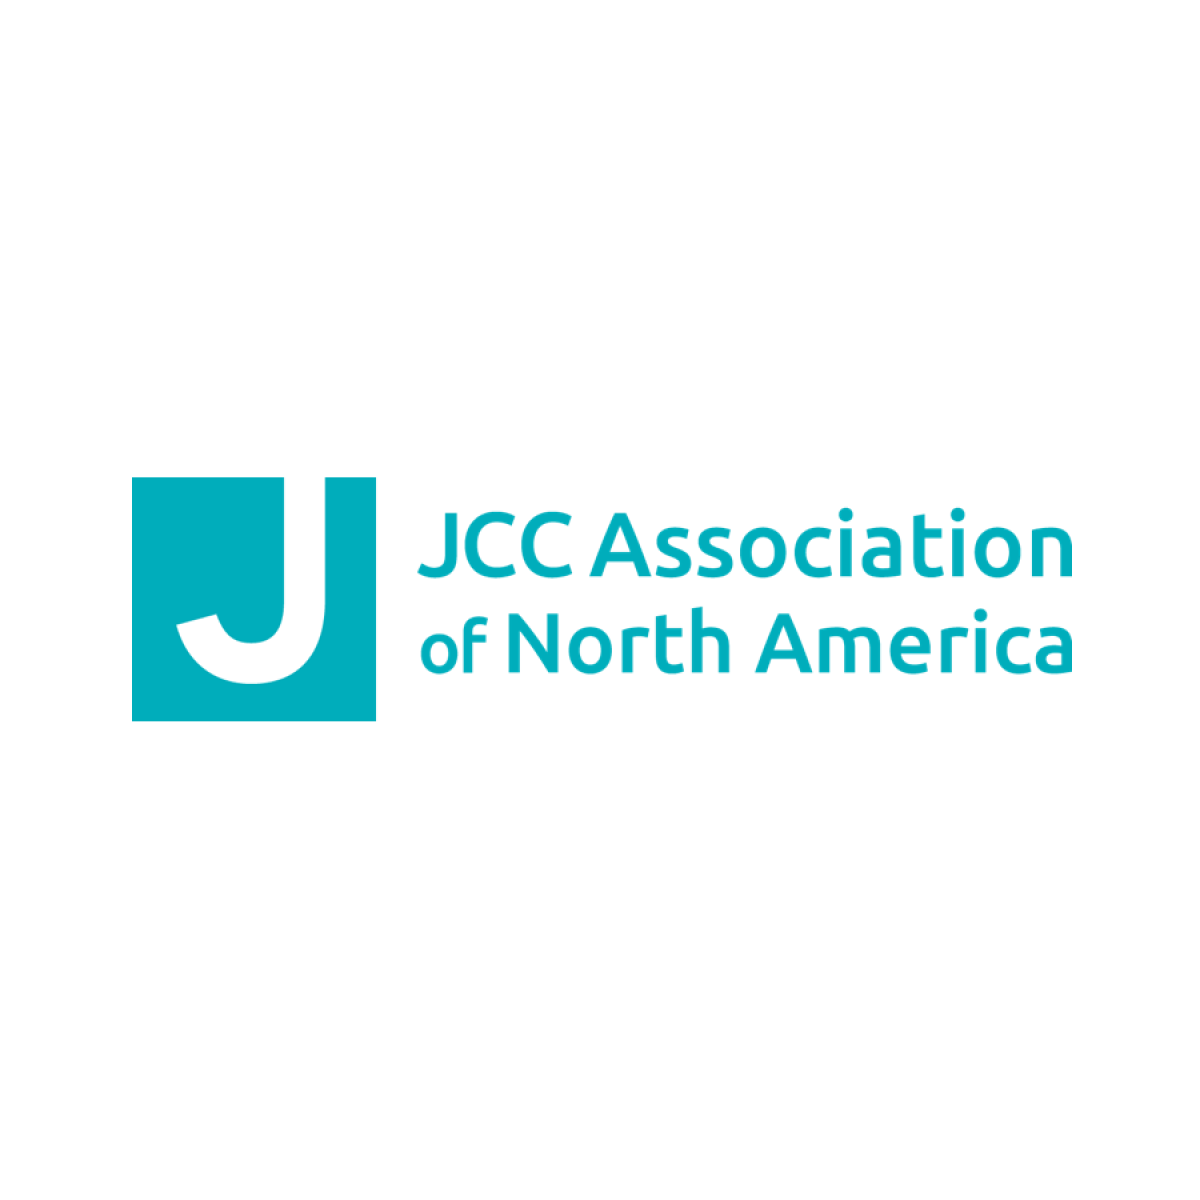 Jewish Community Center Association of North America